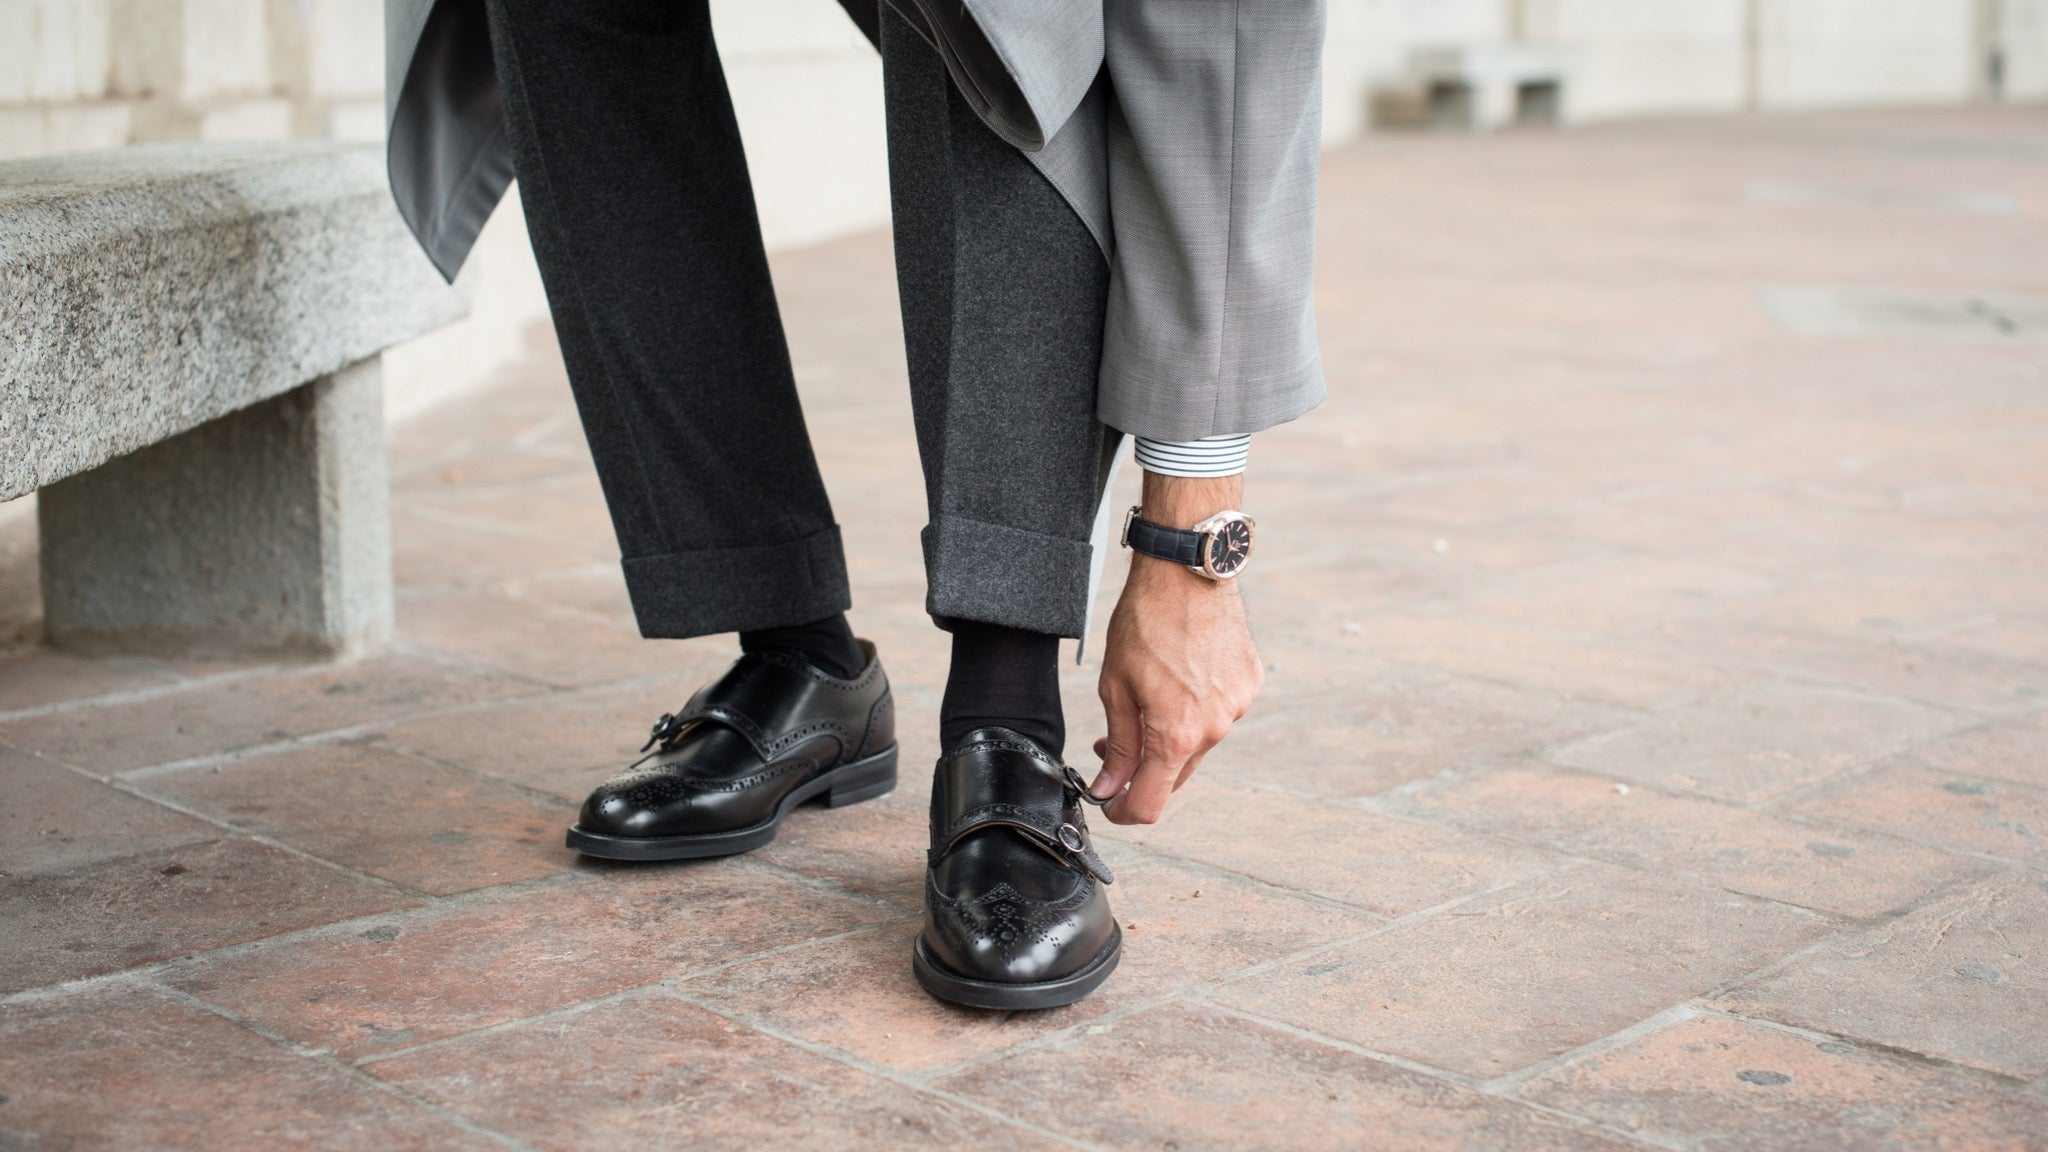 A pair of double monk straps shoes by Velasca.